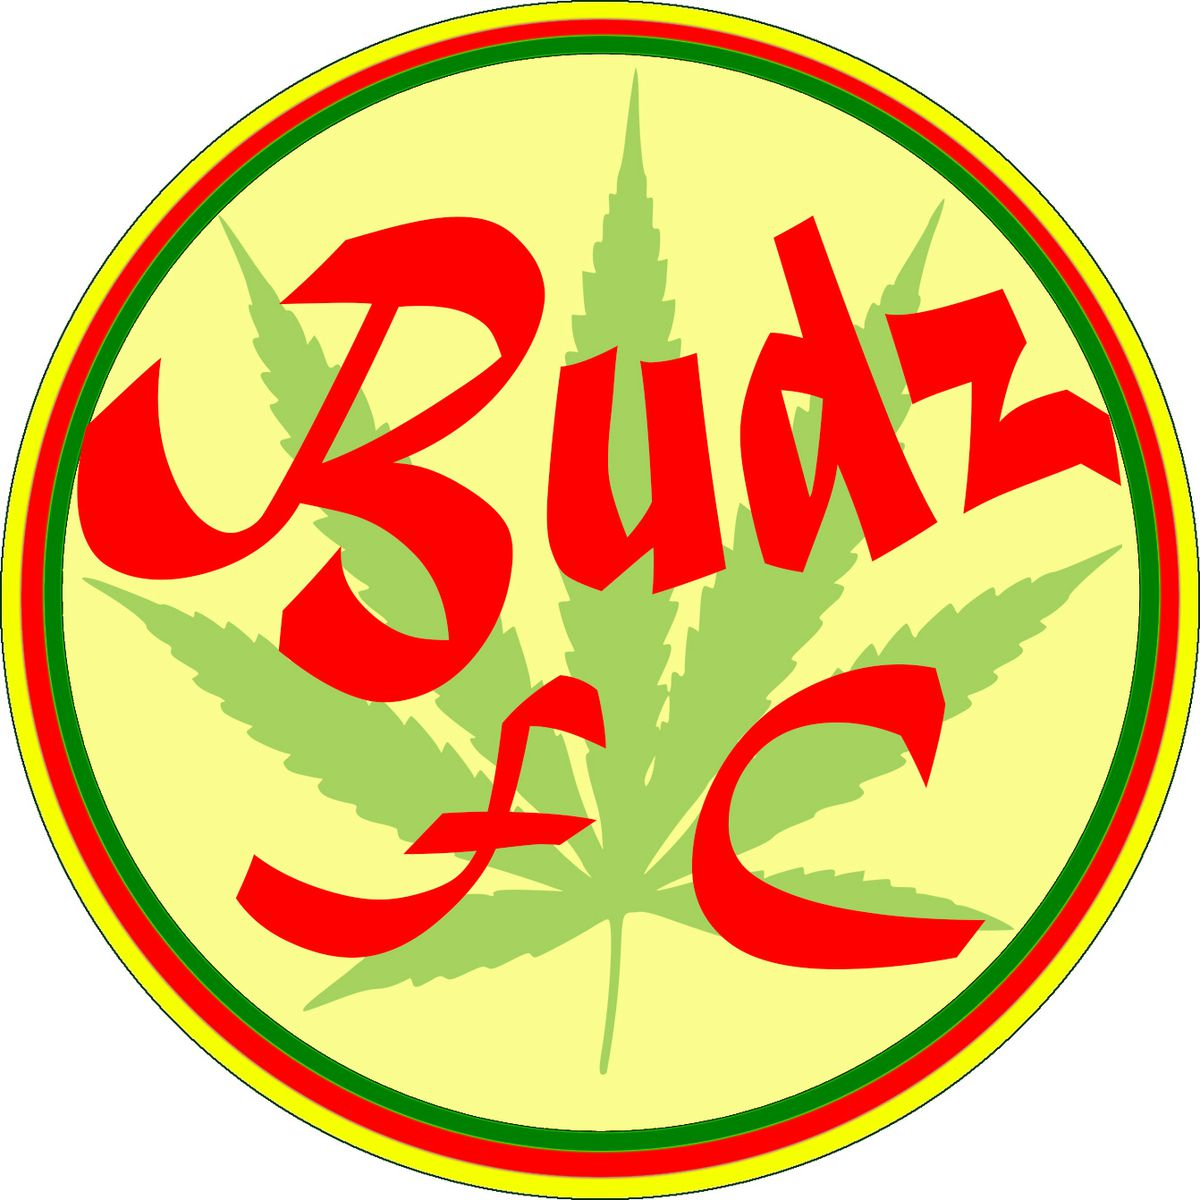 The emblem of FC Budz, from the Computer Generated Bundesliga